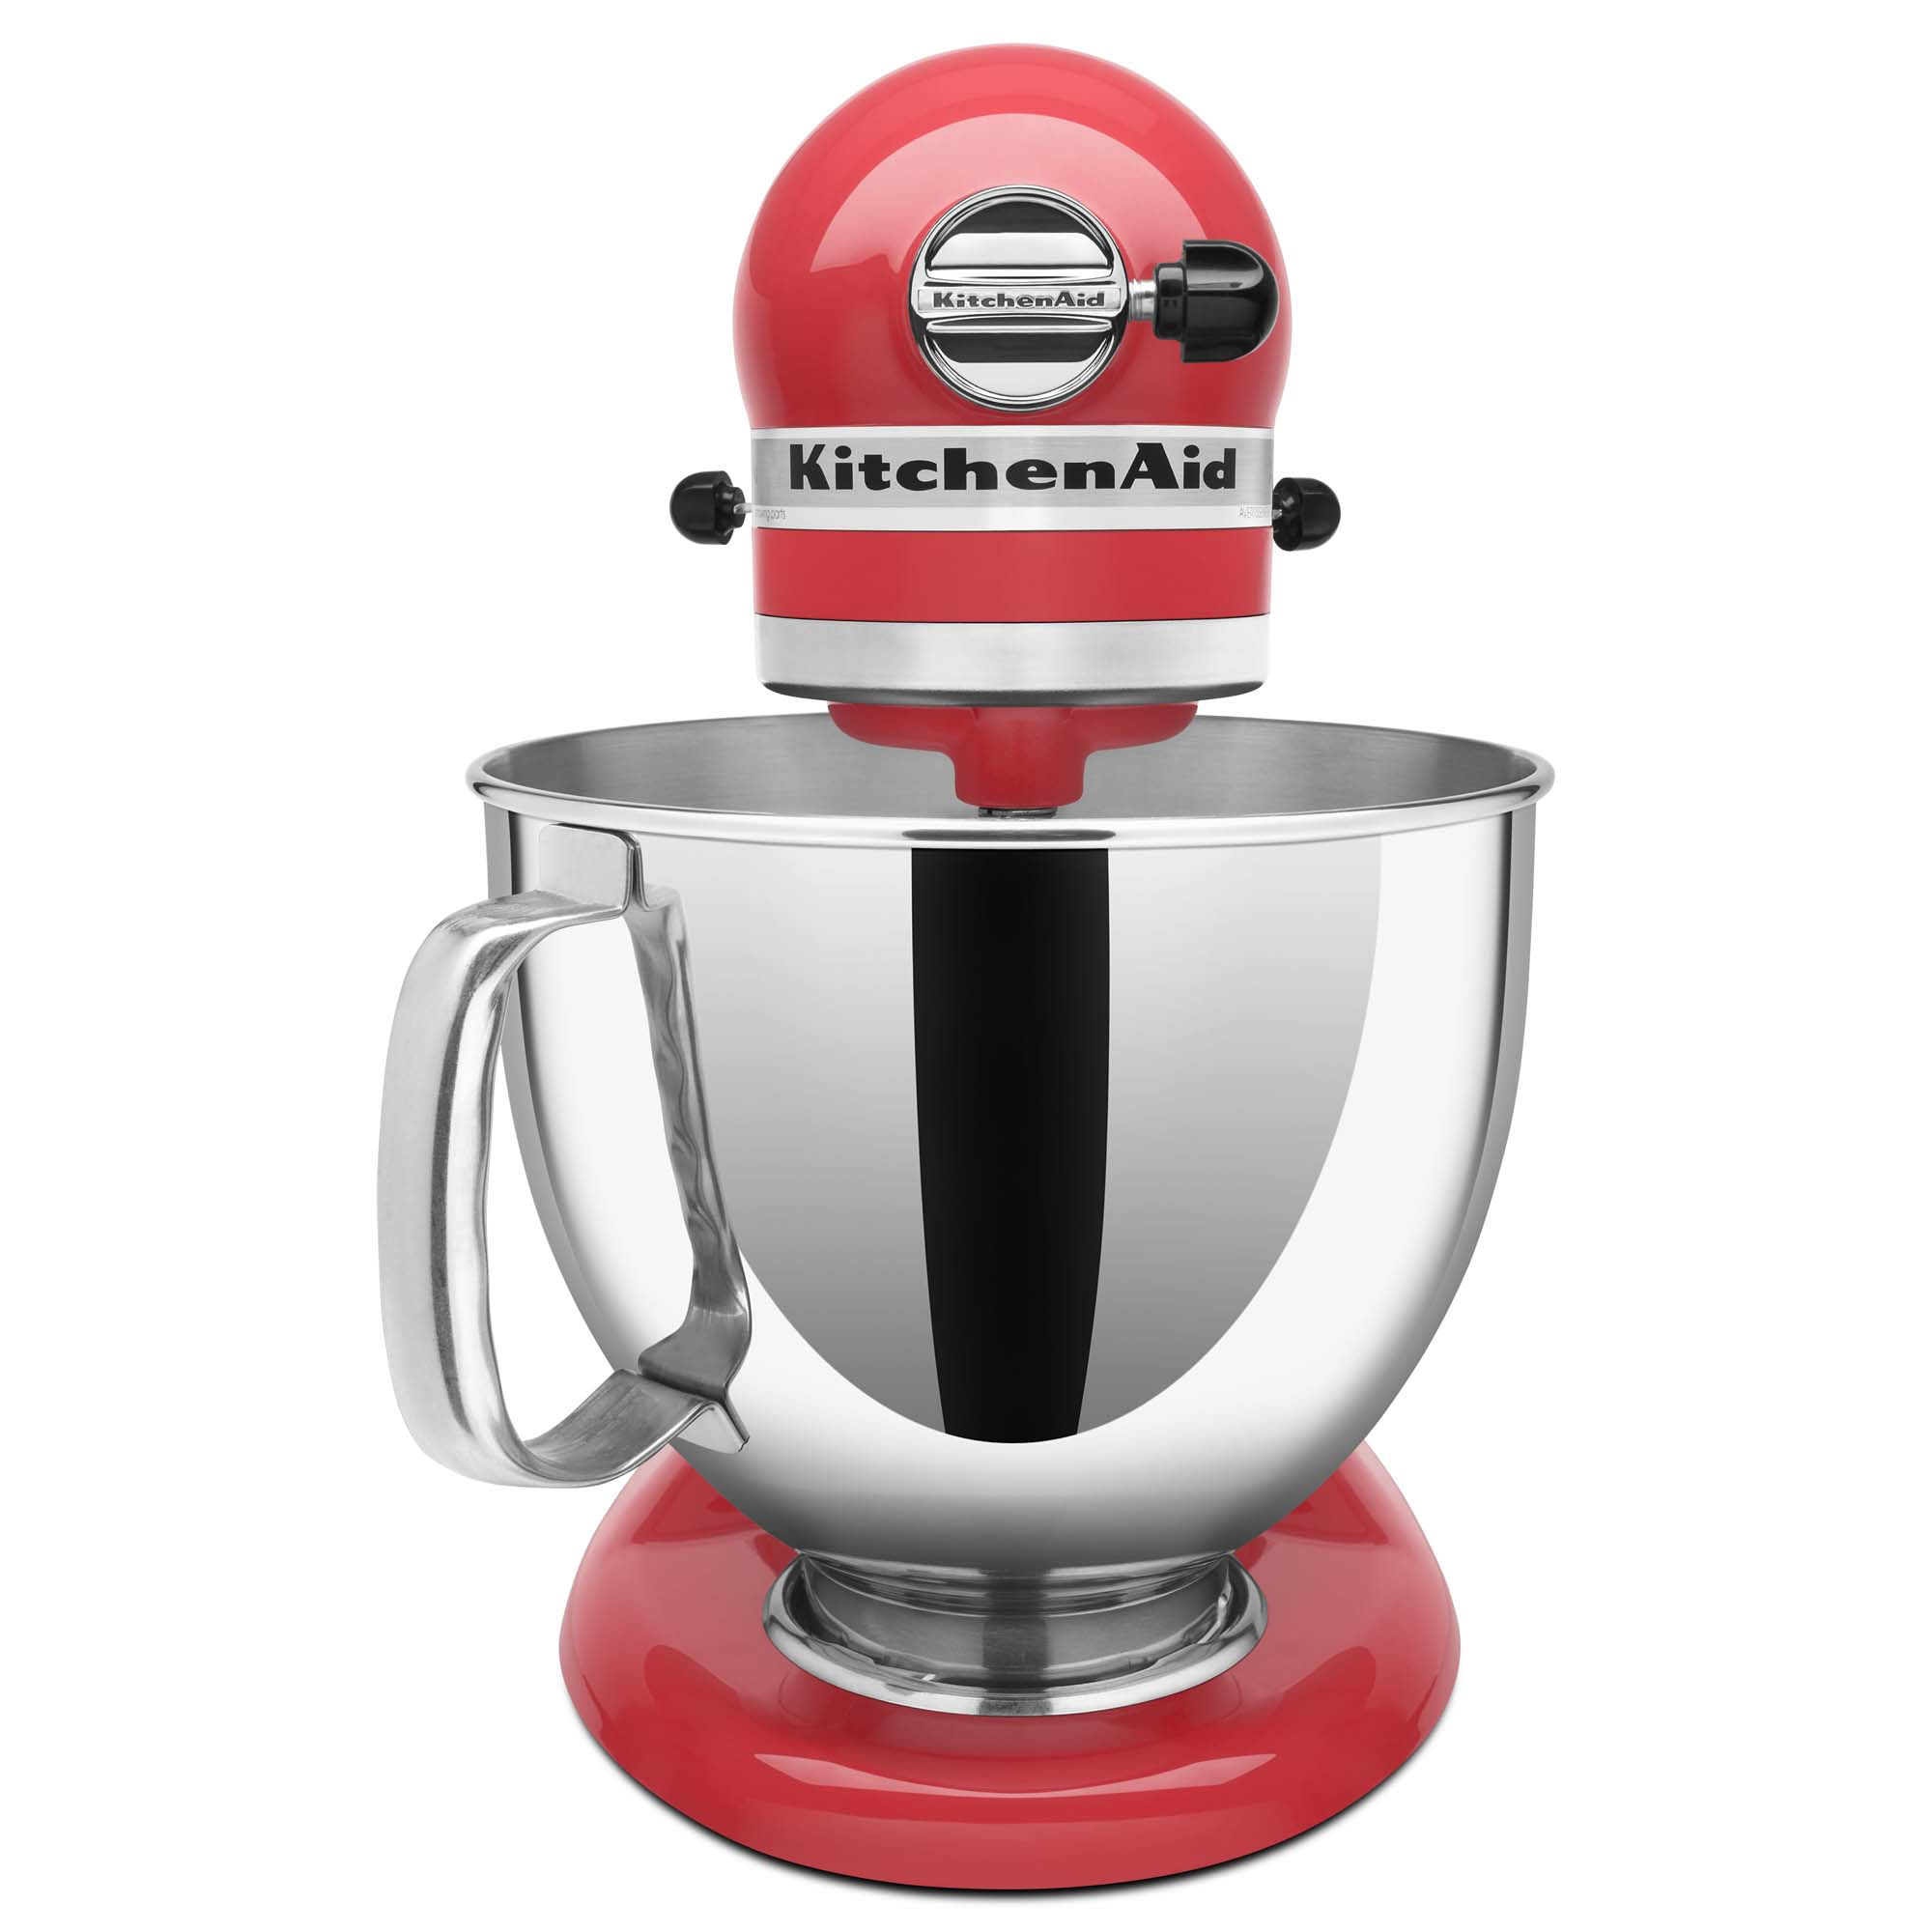 KitchenAid-Refurbished-Artisan-Series-5-Quart-Tilt-Head-Stand-Mixer-RRK150 thumbnail 86